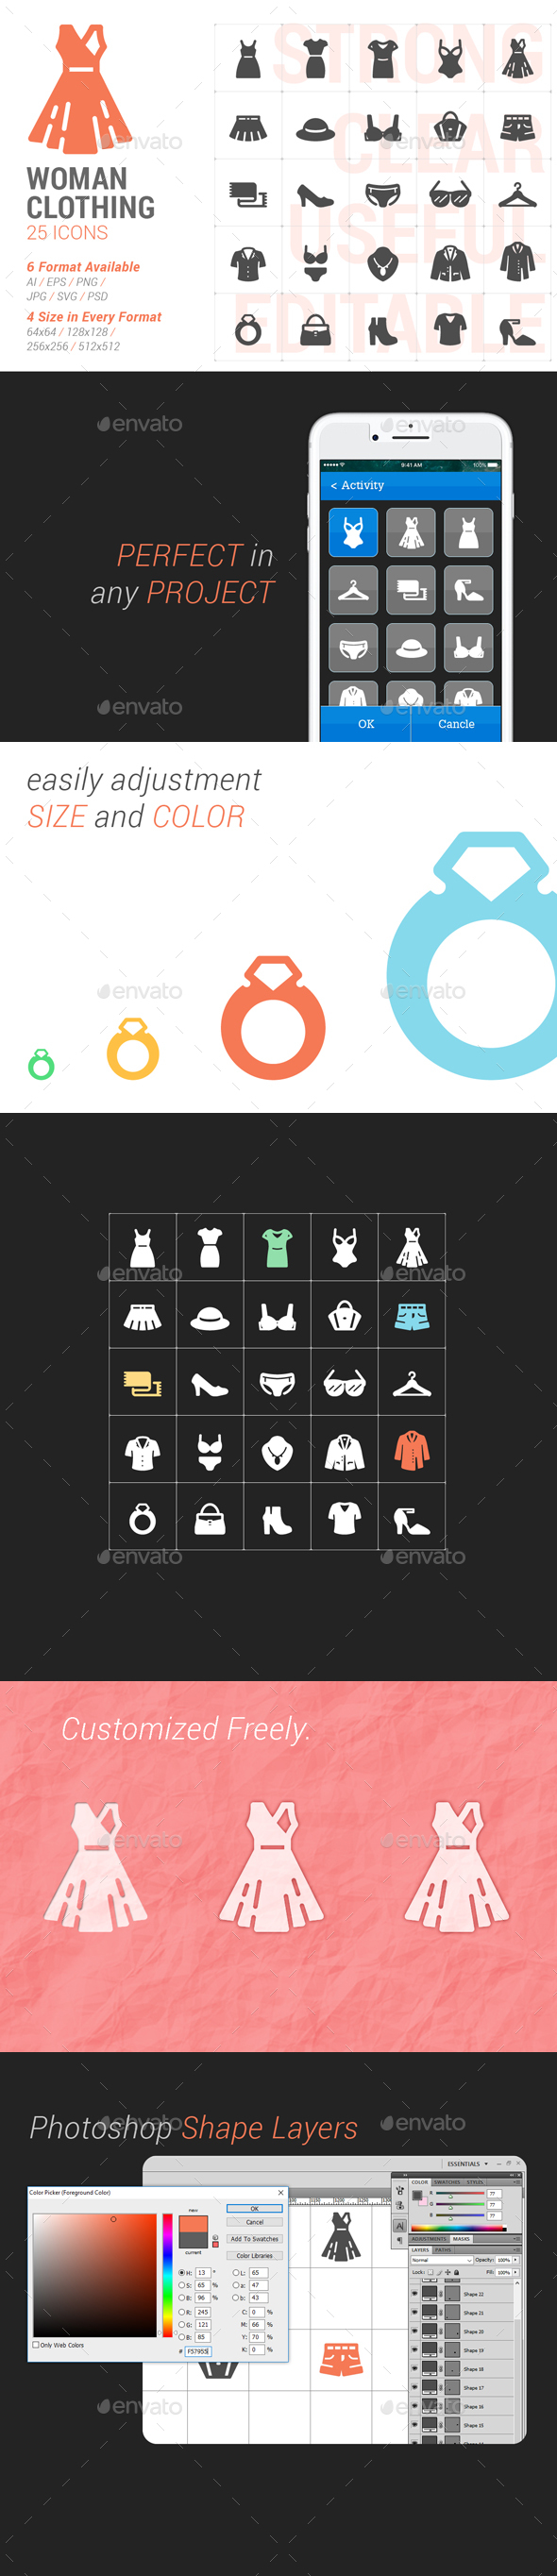 Woman Clothing Filled Icon - Objects Icons